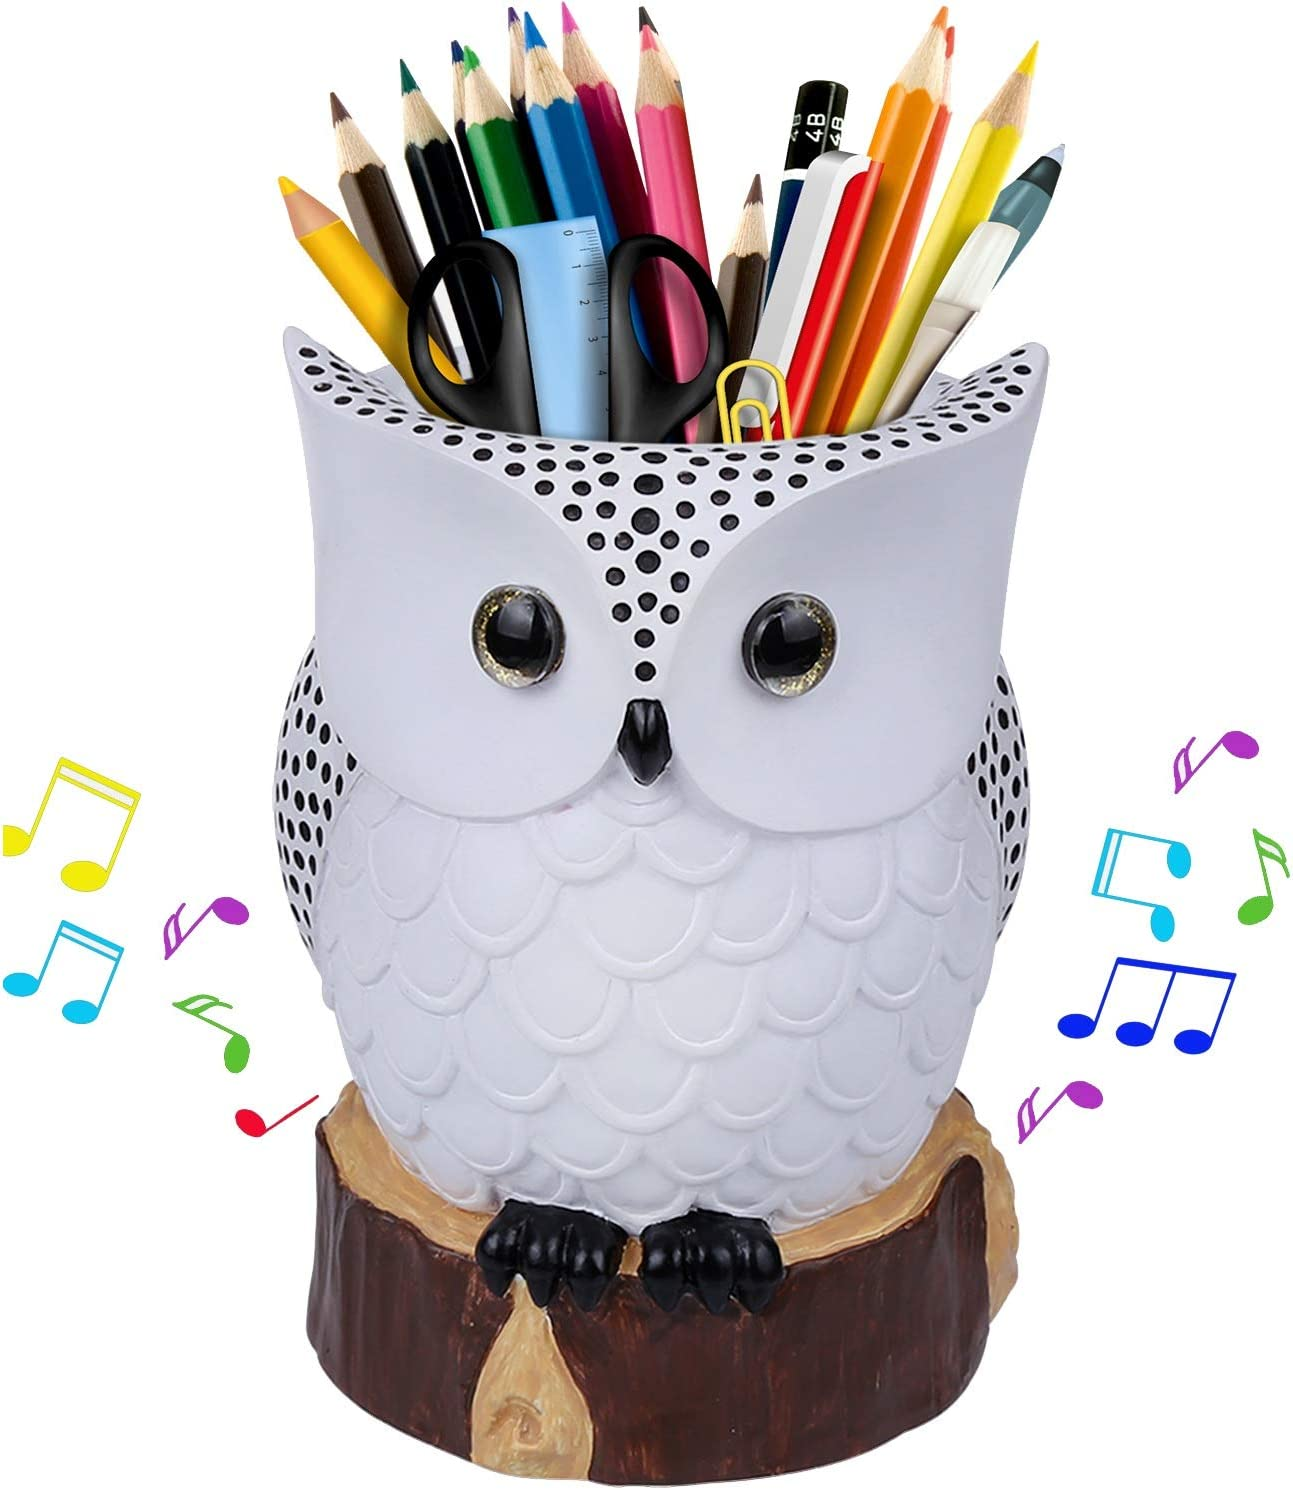 J JHOUSELIFESTYLE Owl Pen Holder, Pencil Holder with Music Box Function, Great Desk Organizer for Pens, Colored Pencils Markers, Paint Brushes, Unique Owl Gifts for Owl Lovers (White)